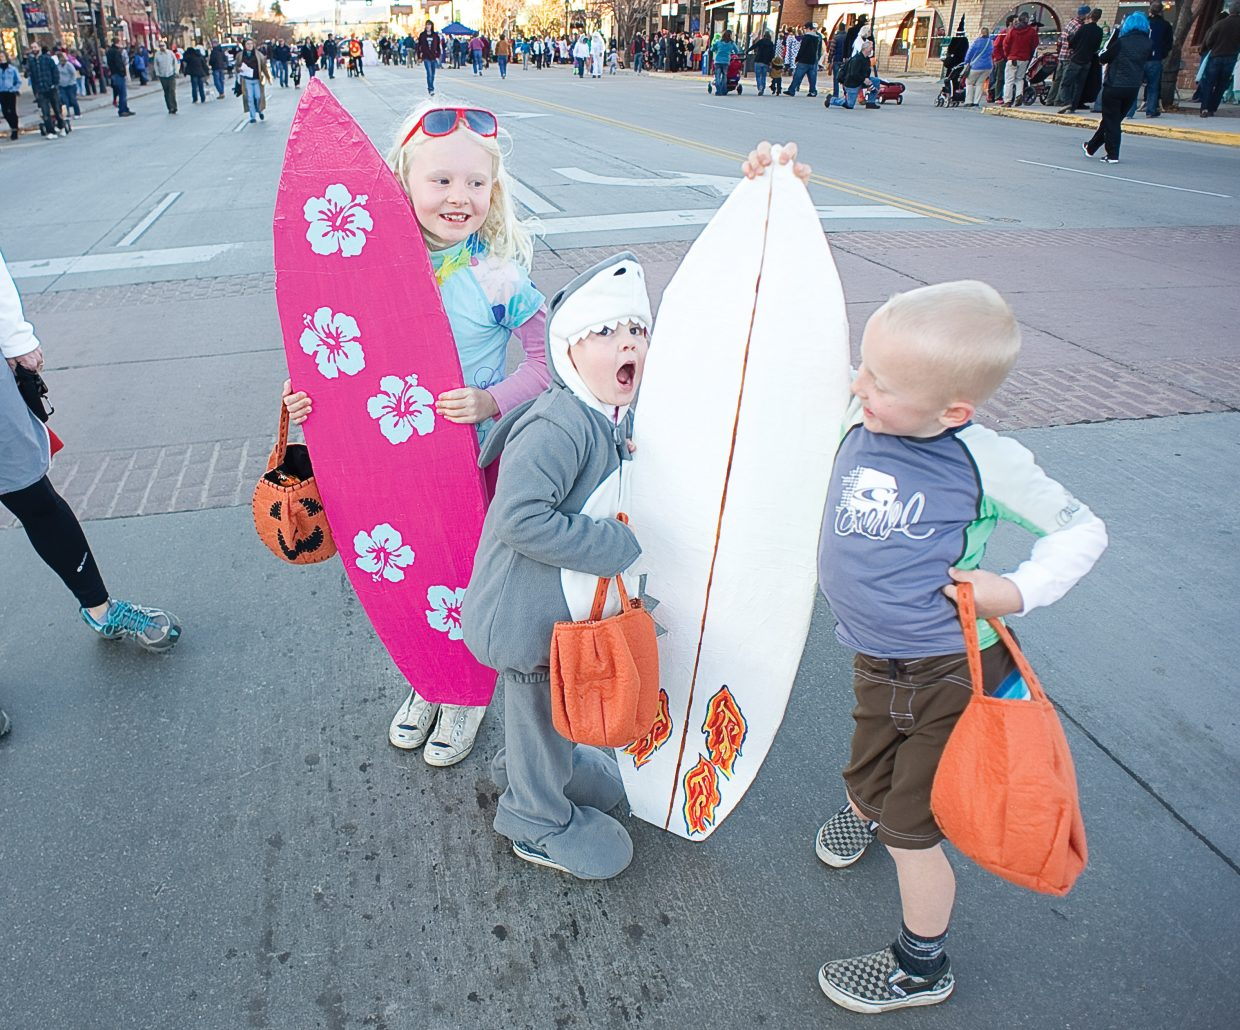 George Redfern looks to take a bite out of his brother Mac's surfboard as his sister Margaret watches the action unfold at Monday's annual Downtown Halloween Stroll on Lincoln Avenue.